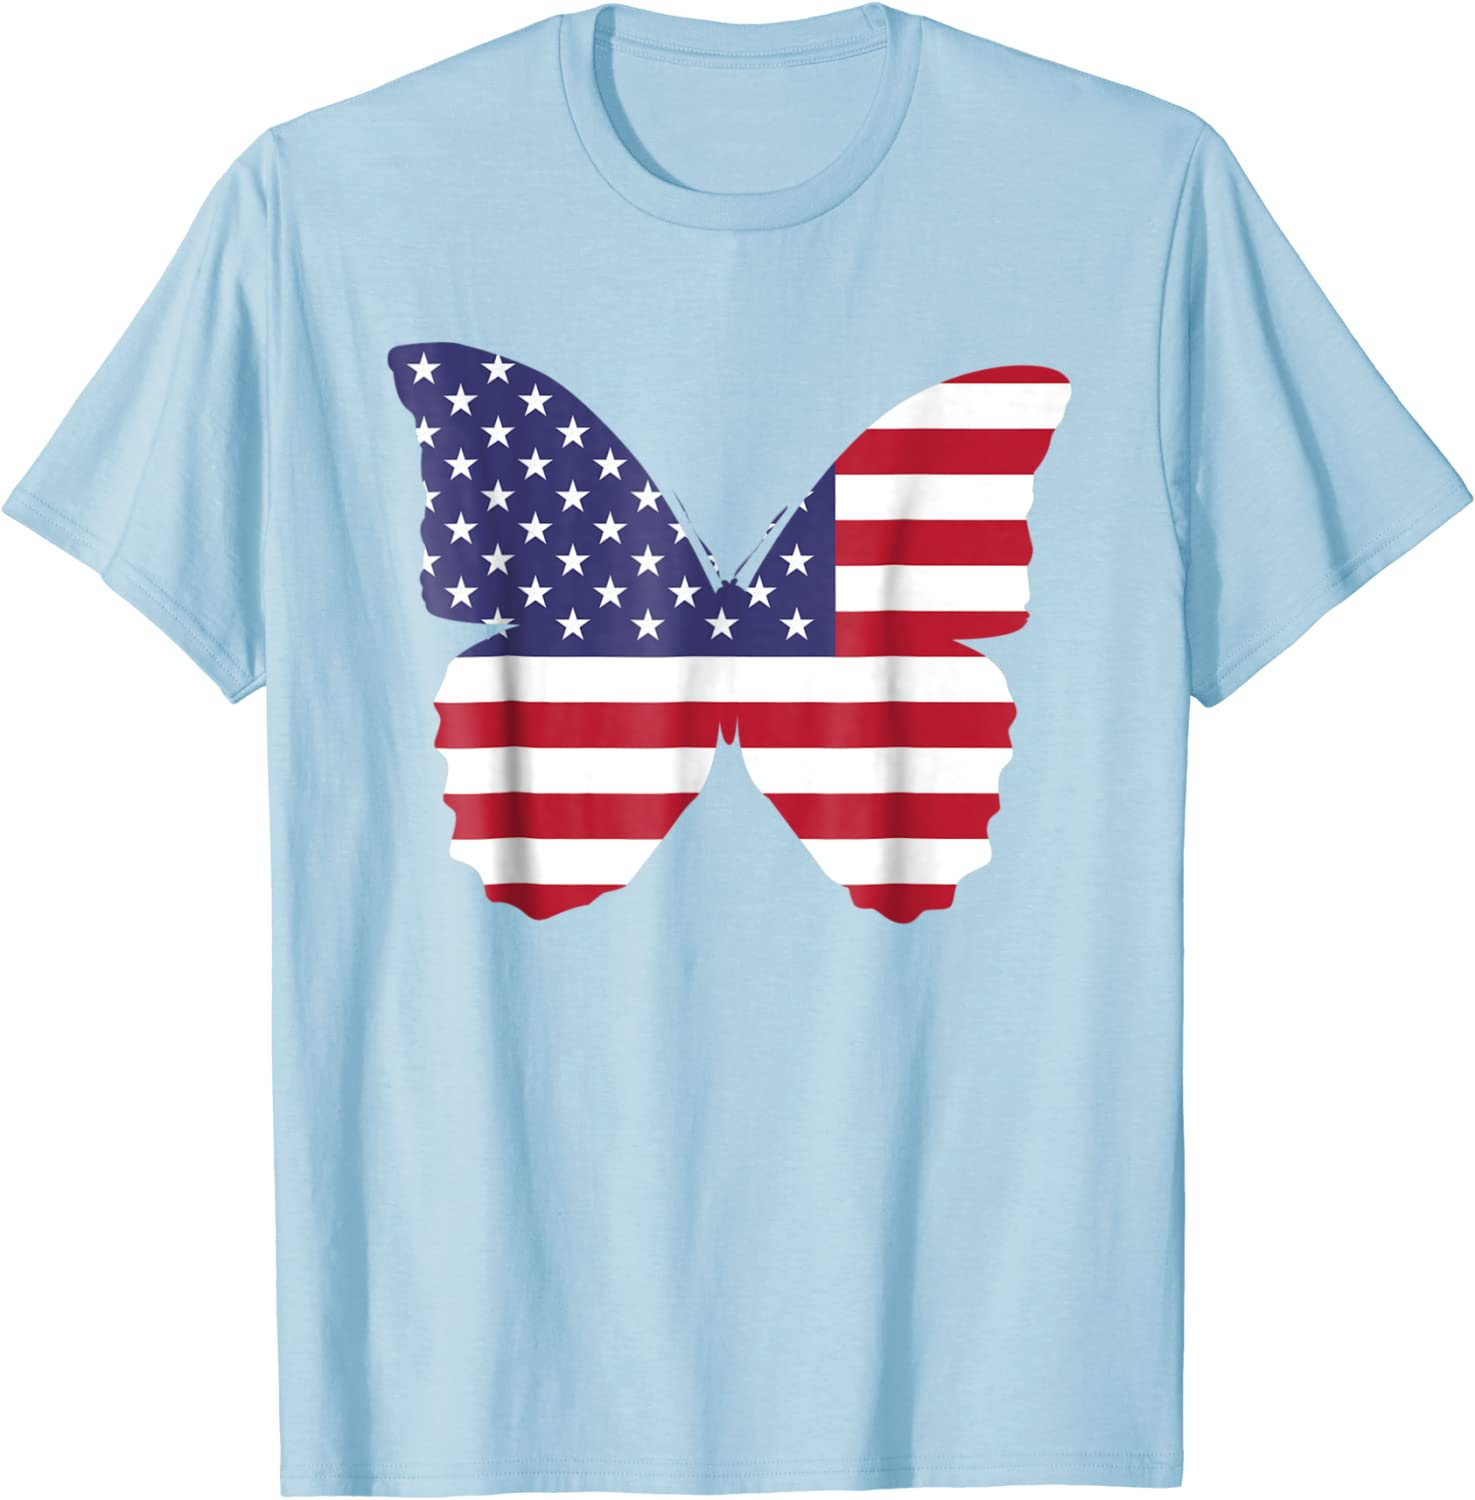 America Merica Yall Let Freedom Ring Fireworks Fourth of July Unisex Fit Tee Sparklers Red White and Blue Independence